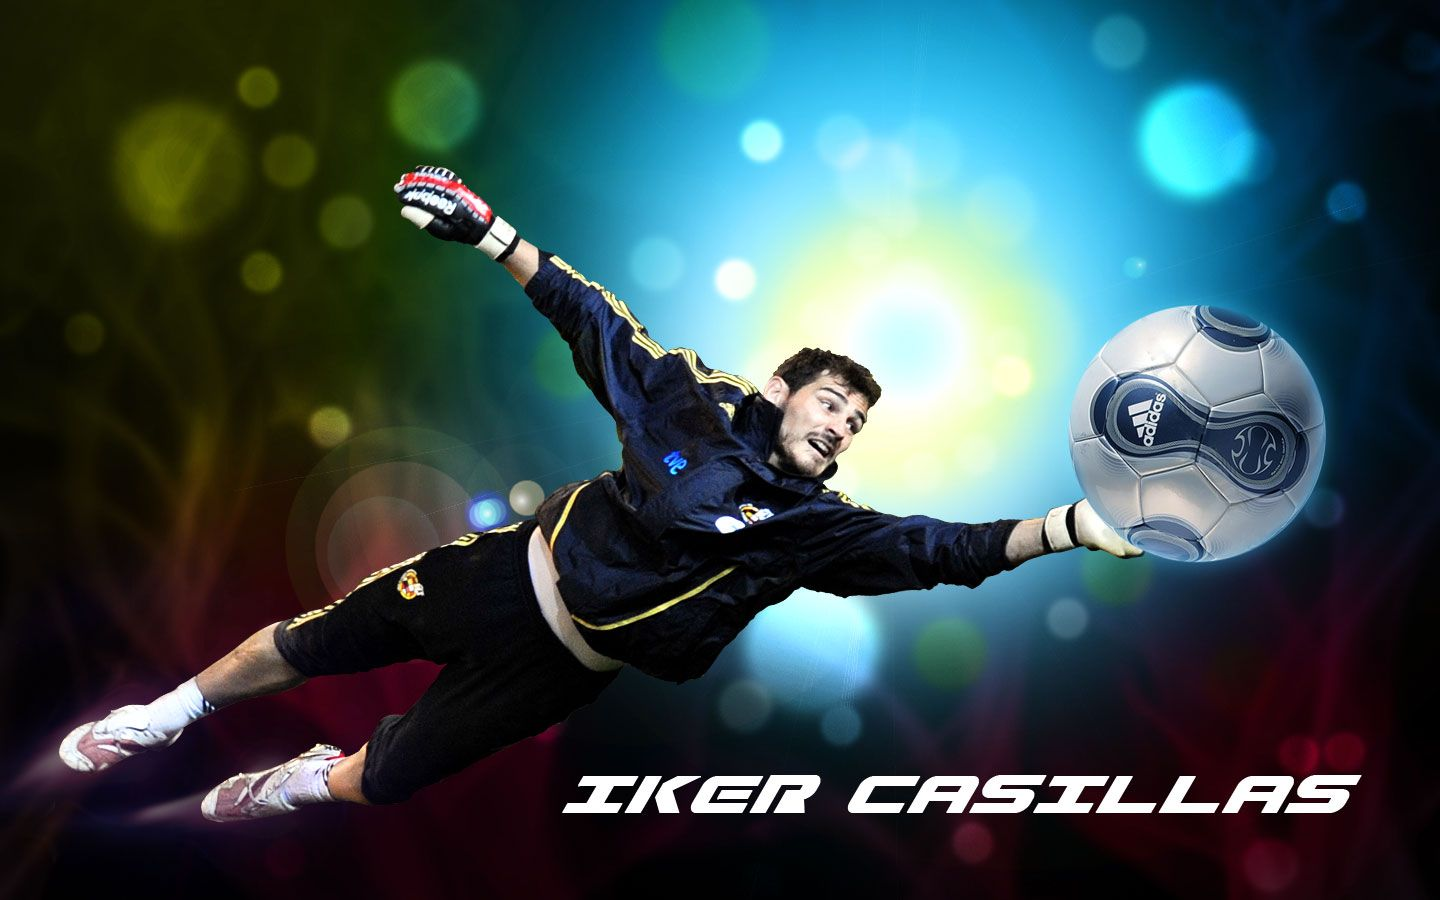 Iker Casillas Latest Hd Wallpapers 2013 All Football